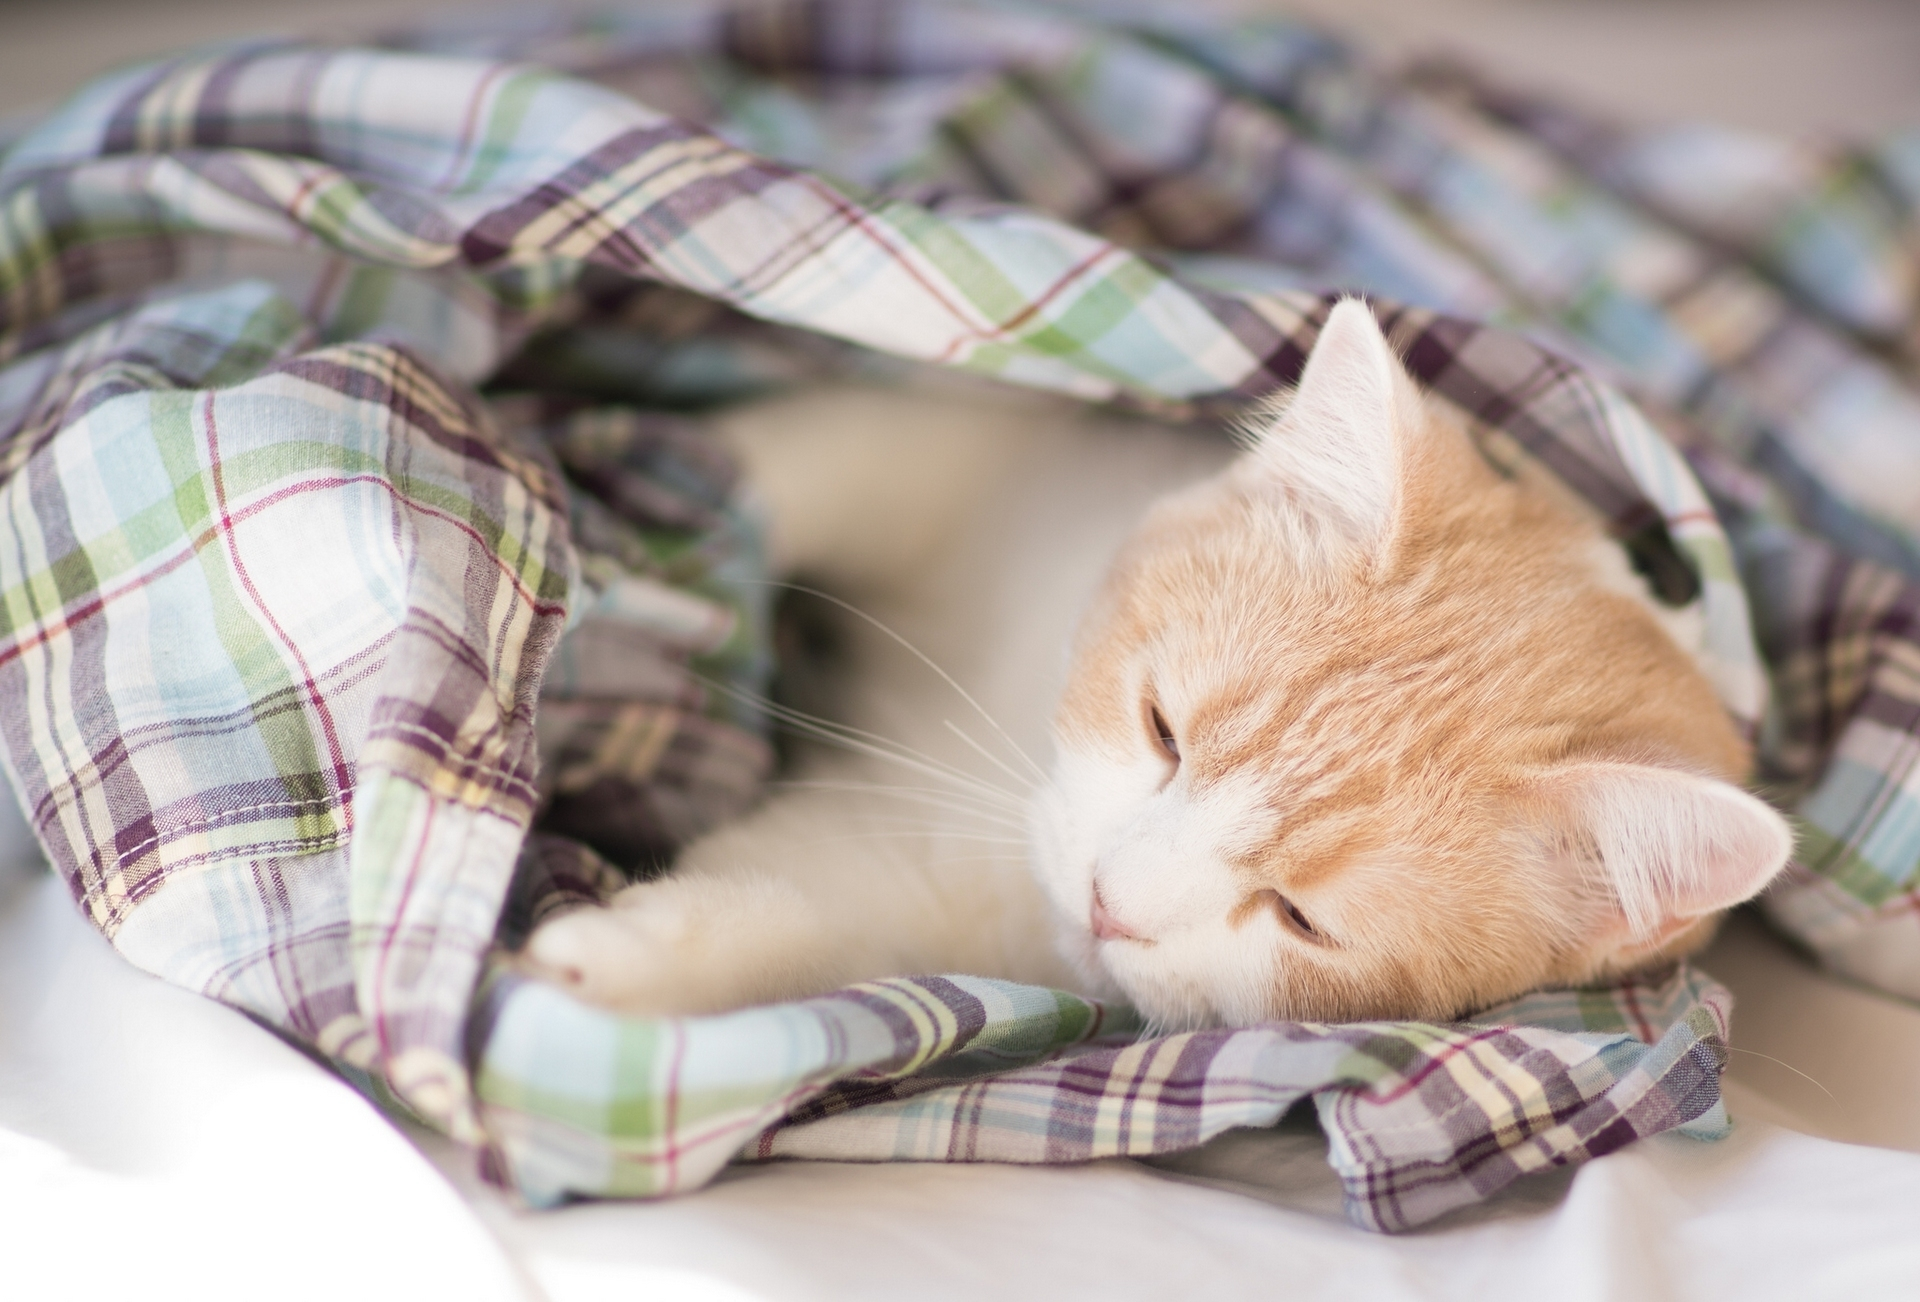 99720 download wallpaper Animals, Kitty, Kitten, Blanket, Sleep, Dream, Nice, Sweetheart screensavers and pictures for free